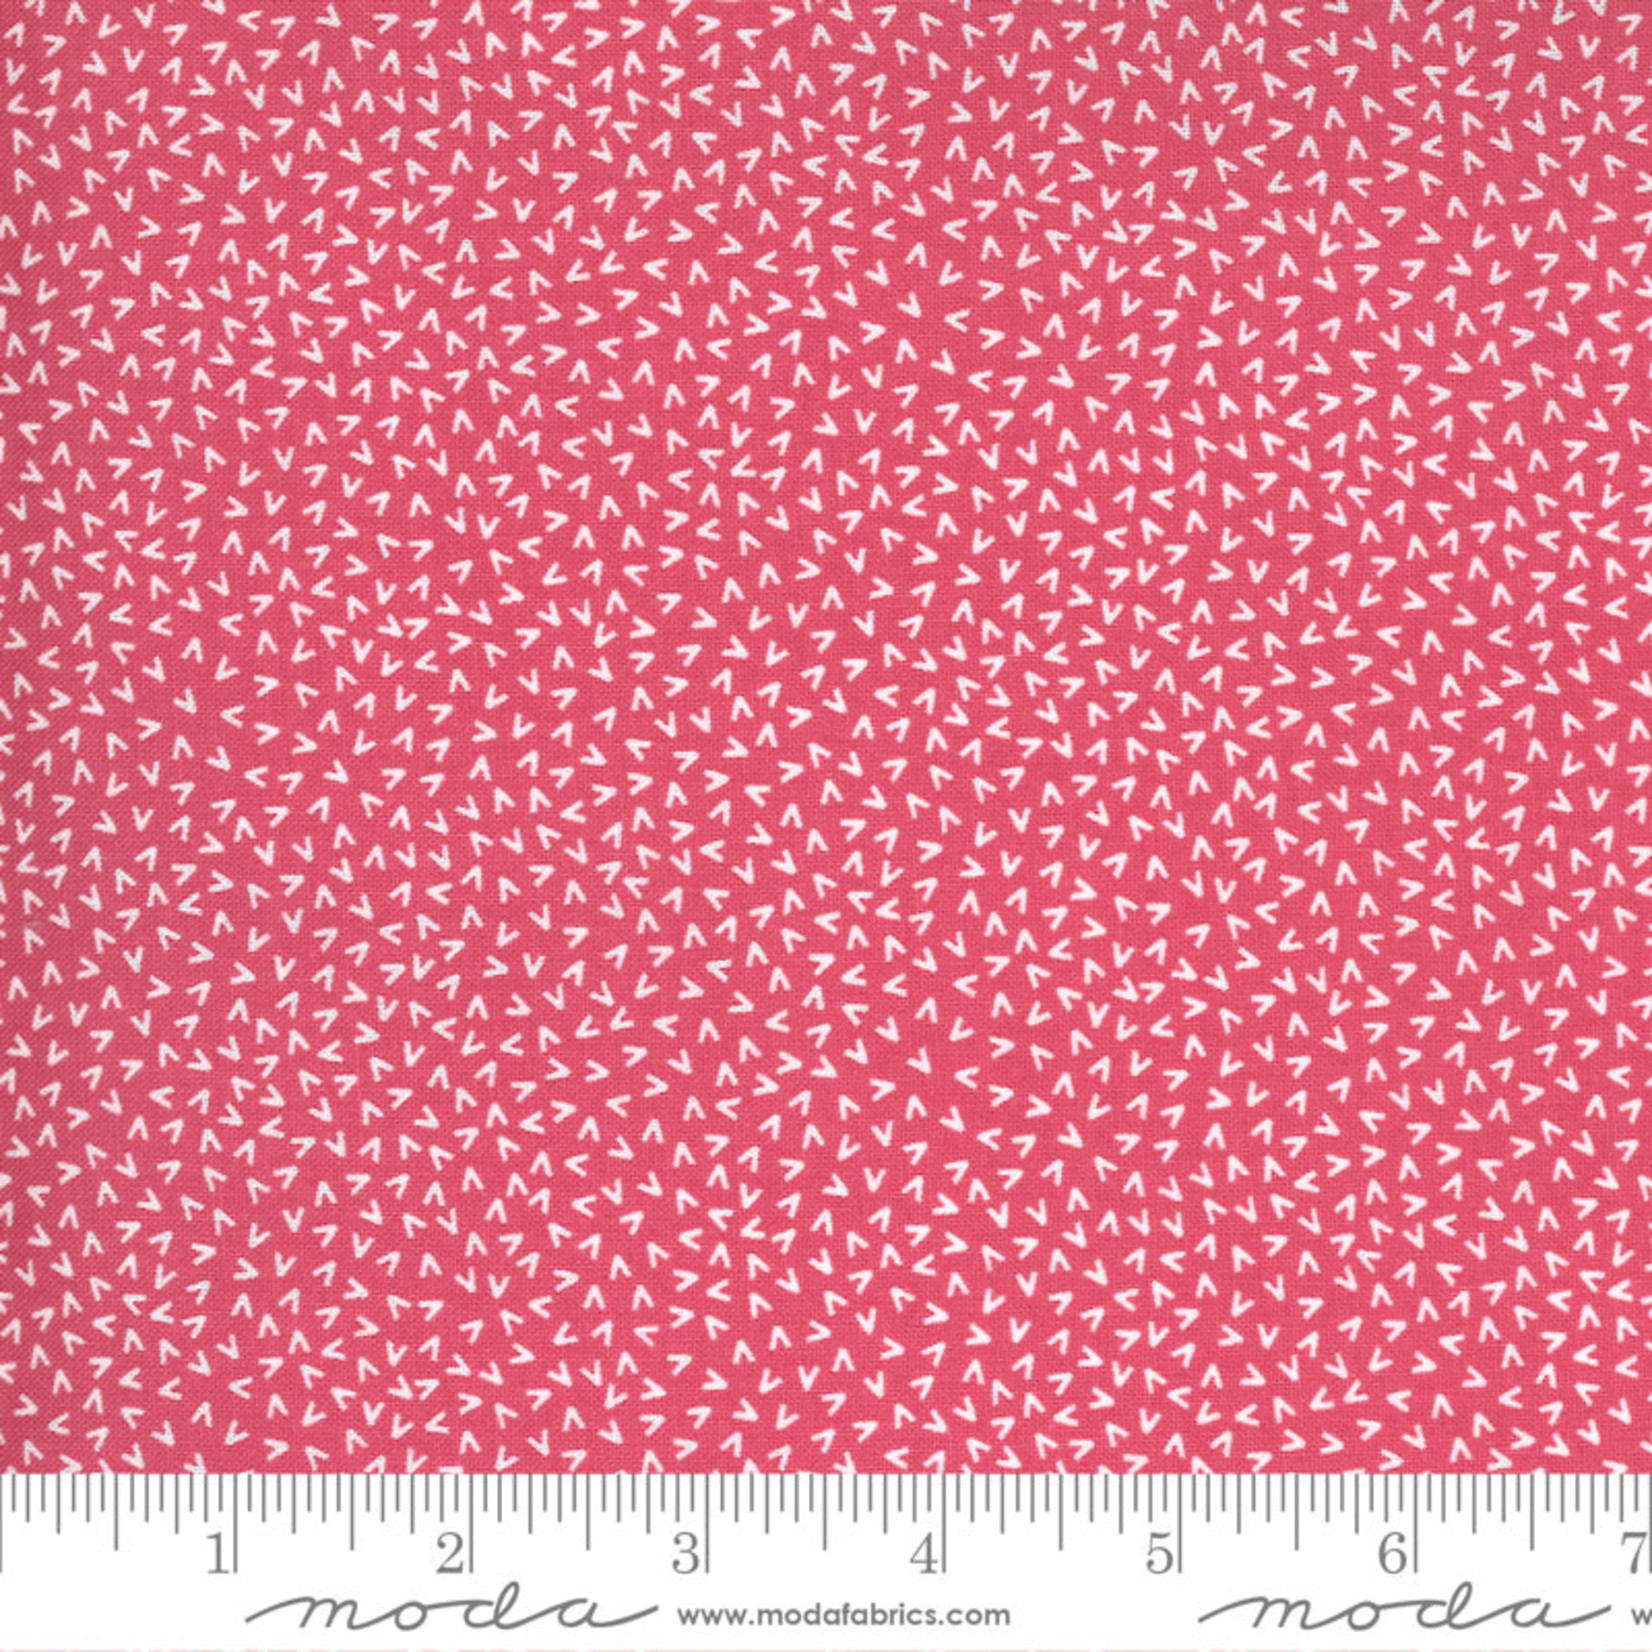 Sweetwater Spring Chicken, Tracks, Pink 55525-12 $0.20 per cm or $20/m